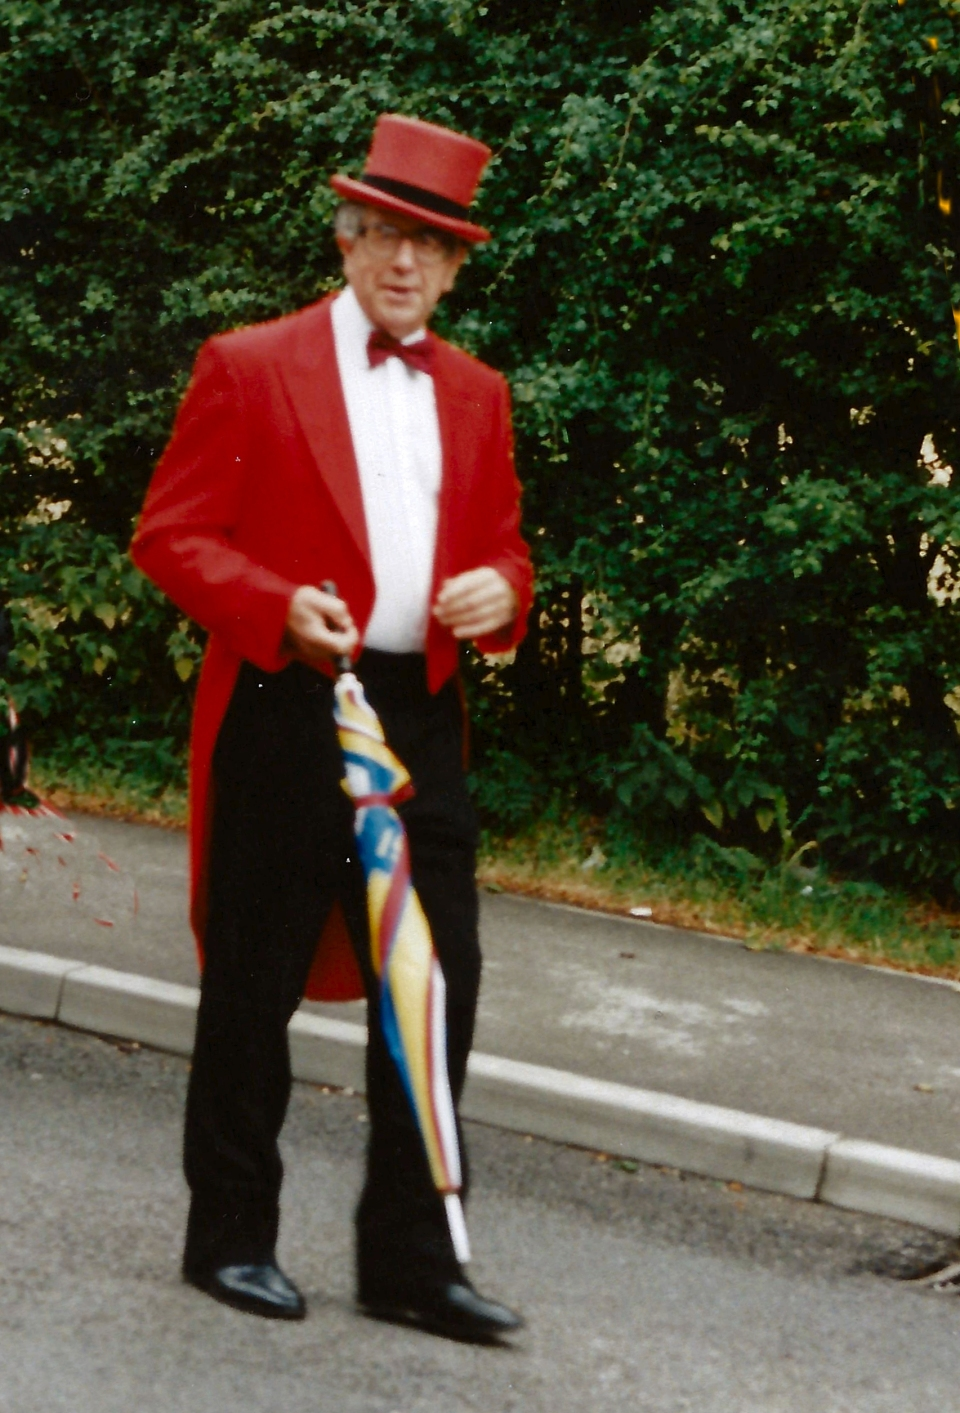 Ed Cheshire on parade 95